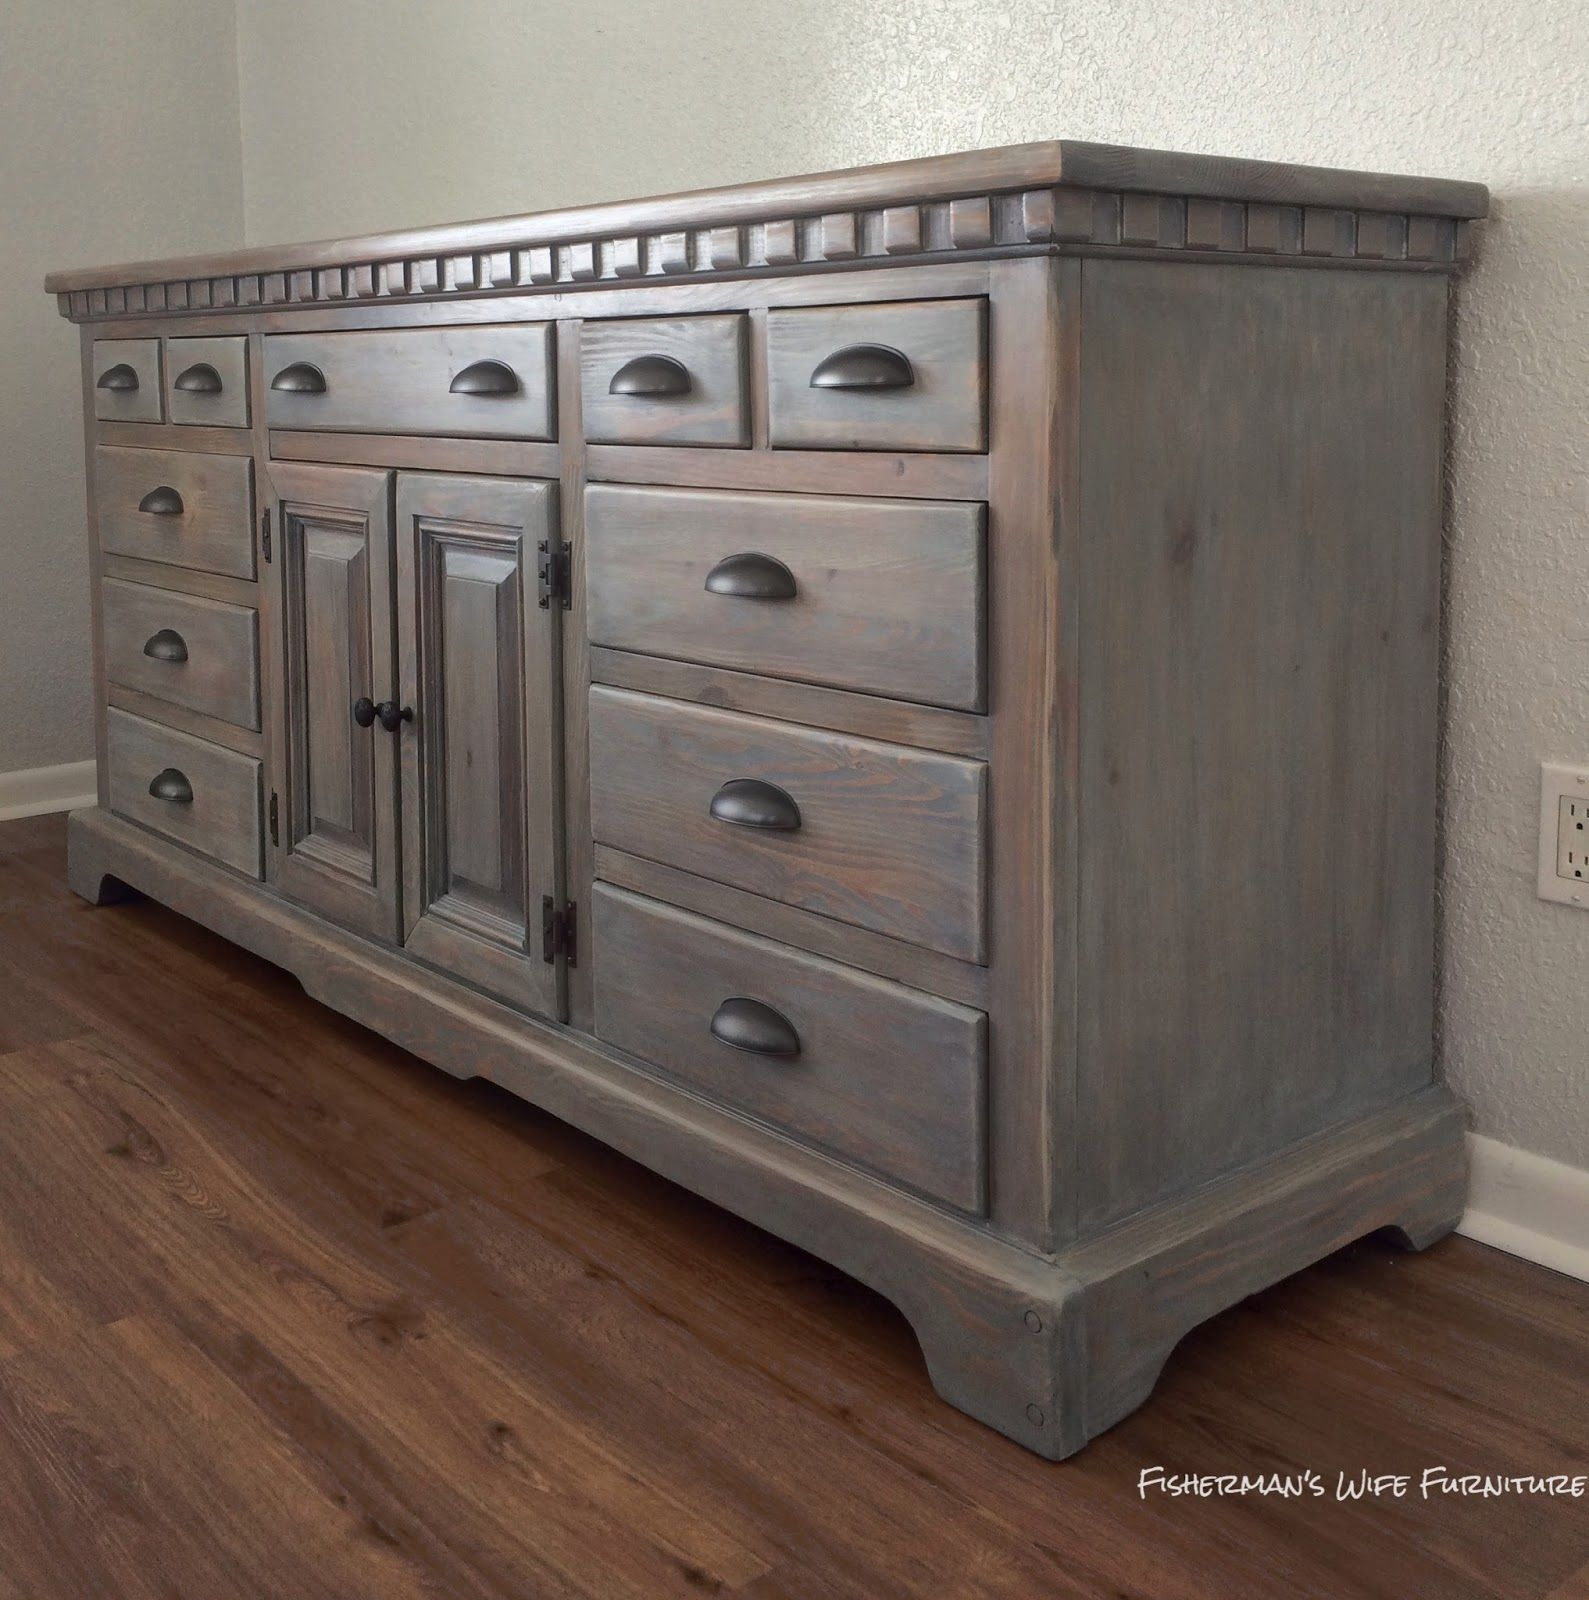 For This Finished I Used Rust-Oleum Weathered Gray Stain